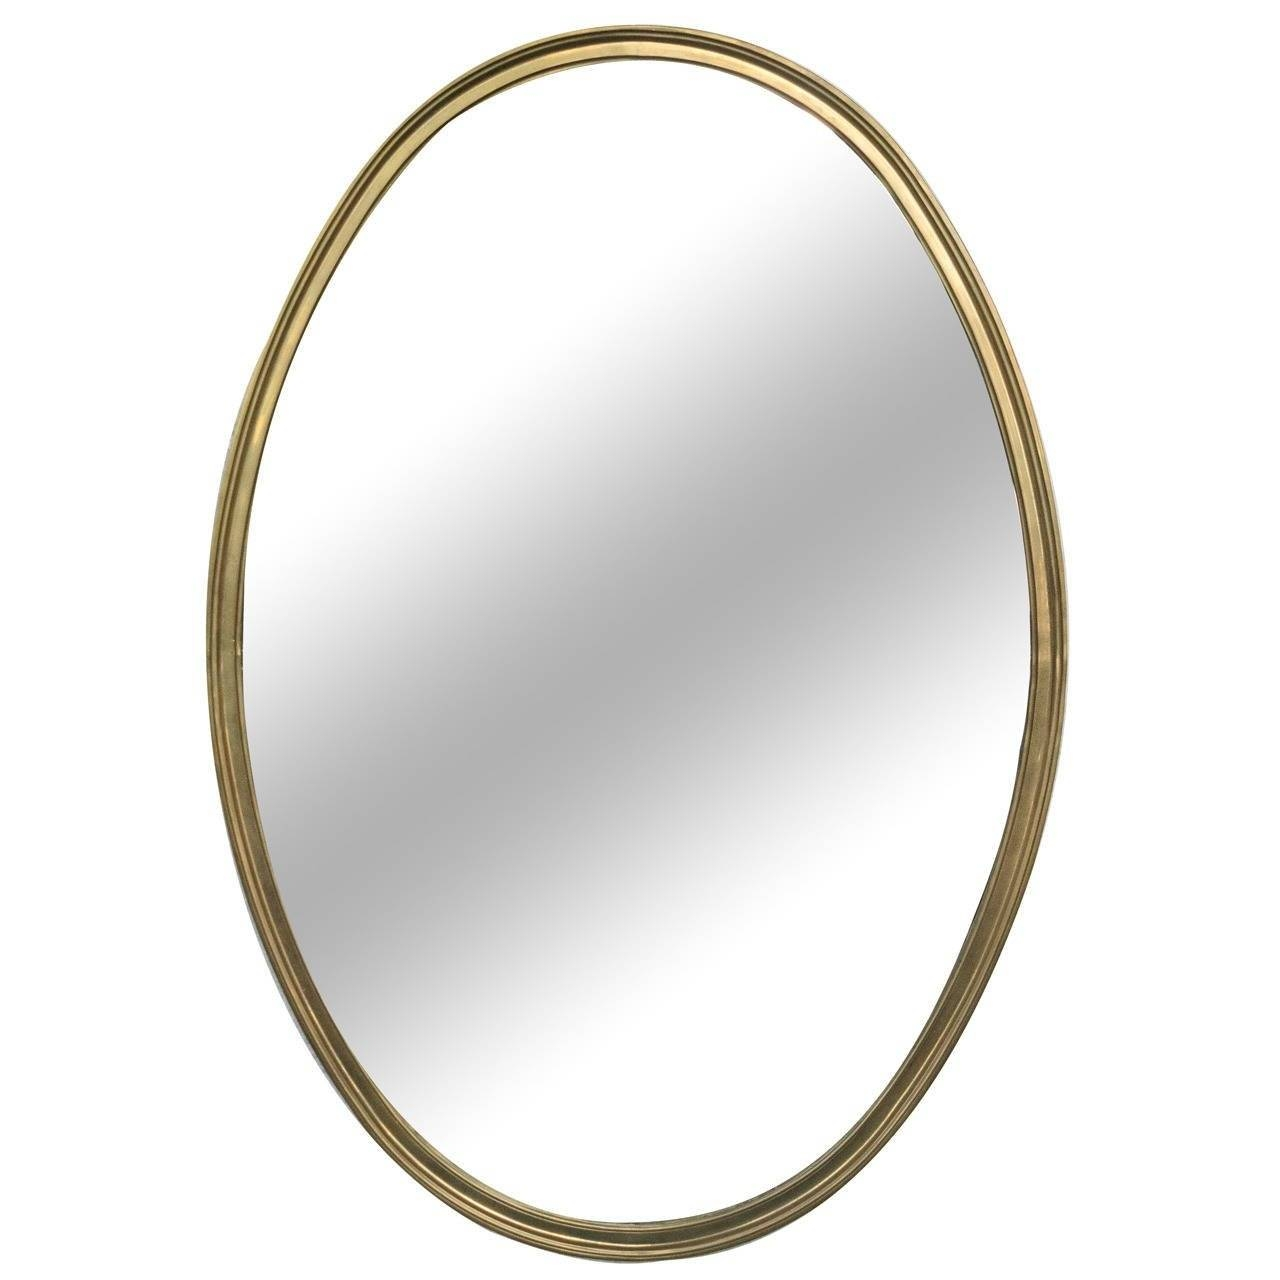 1950S French Brass Oval-Shaped Mirror At 1Stdibs throughout French Oval Mirrors (Image 2 of 15)